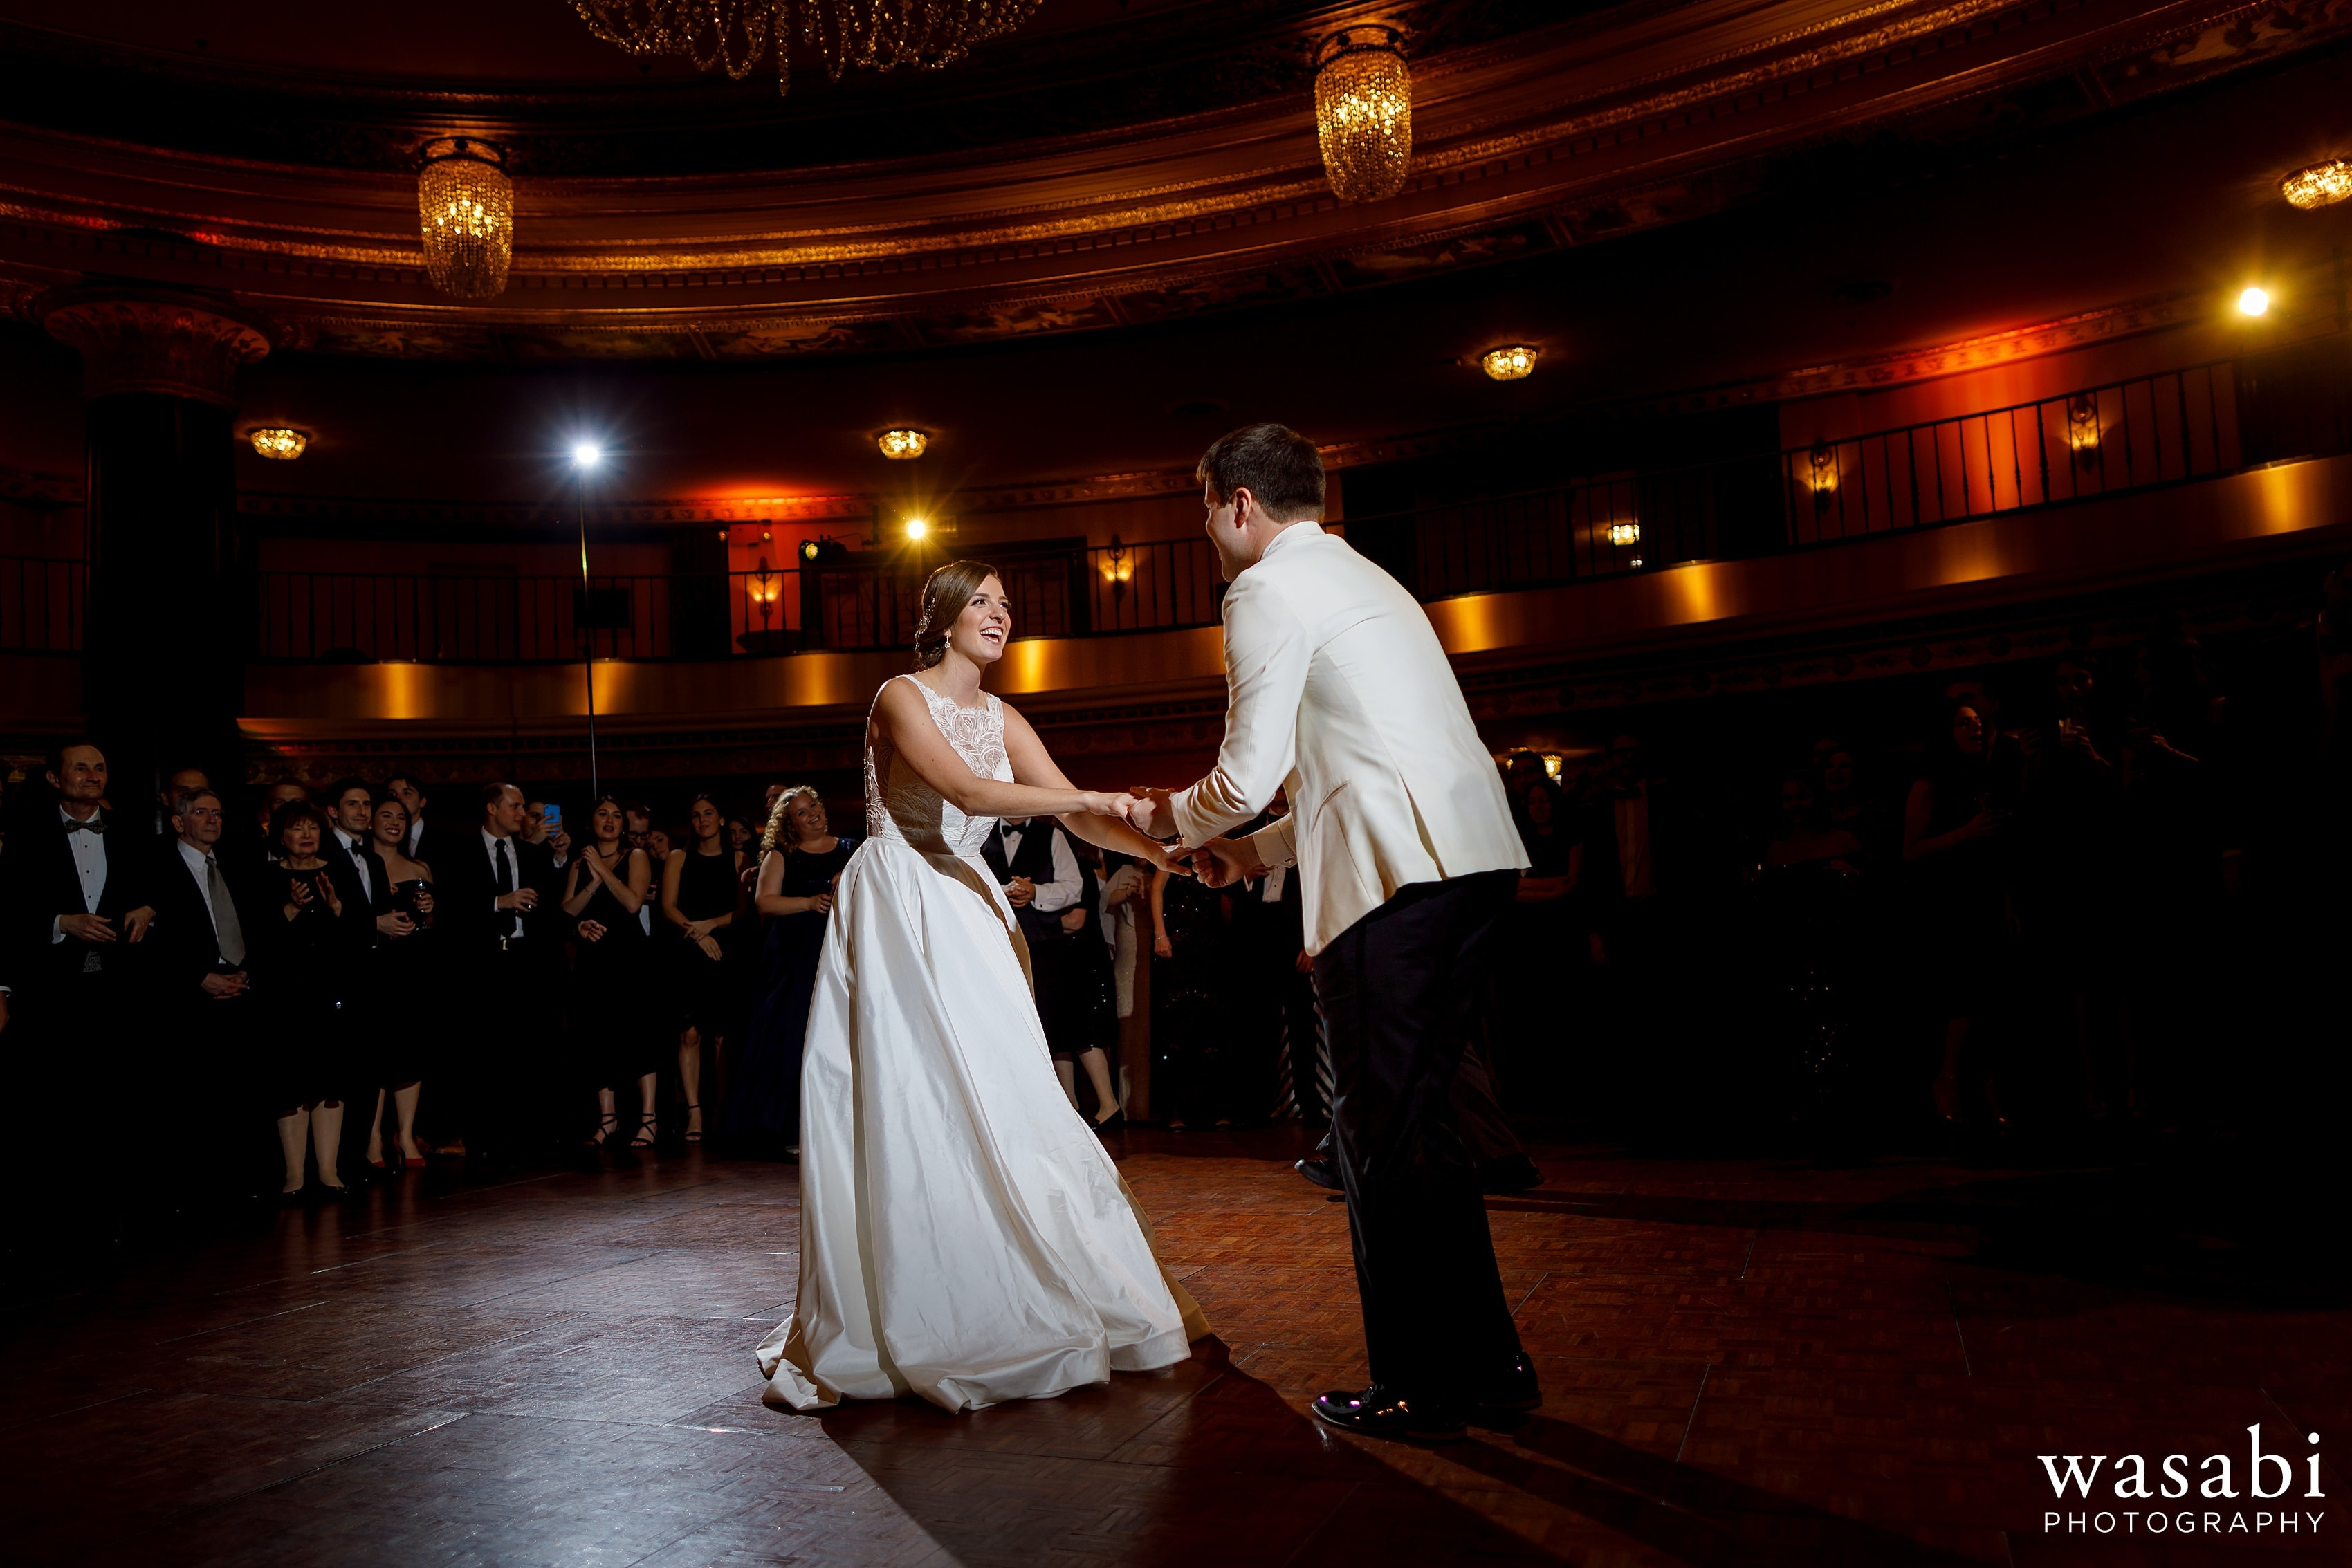 bride and groom's first dance during Jewish wedding reception at InterContinental Chicago Magnificent Mile Hotel